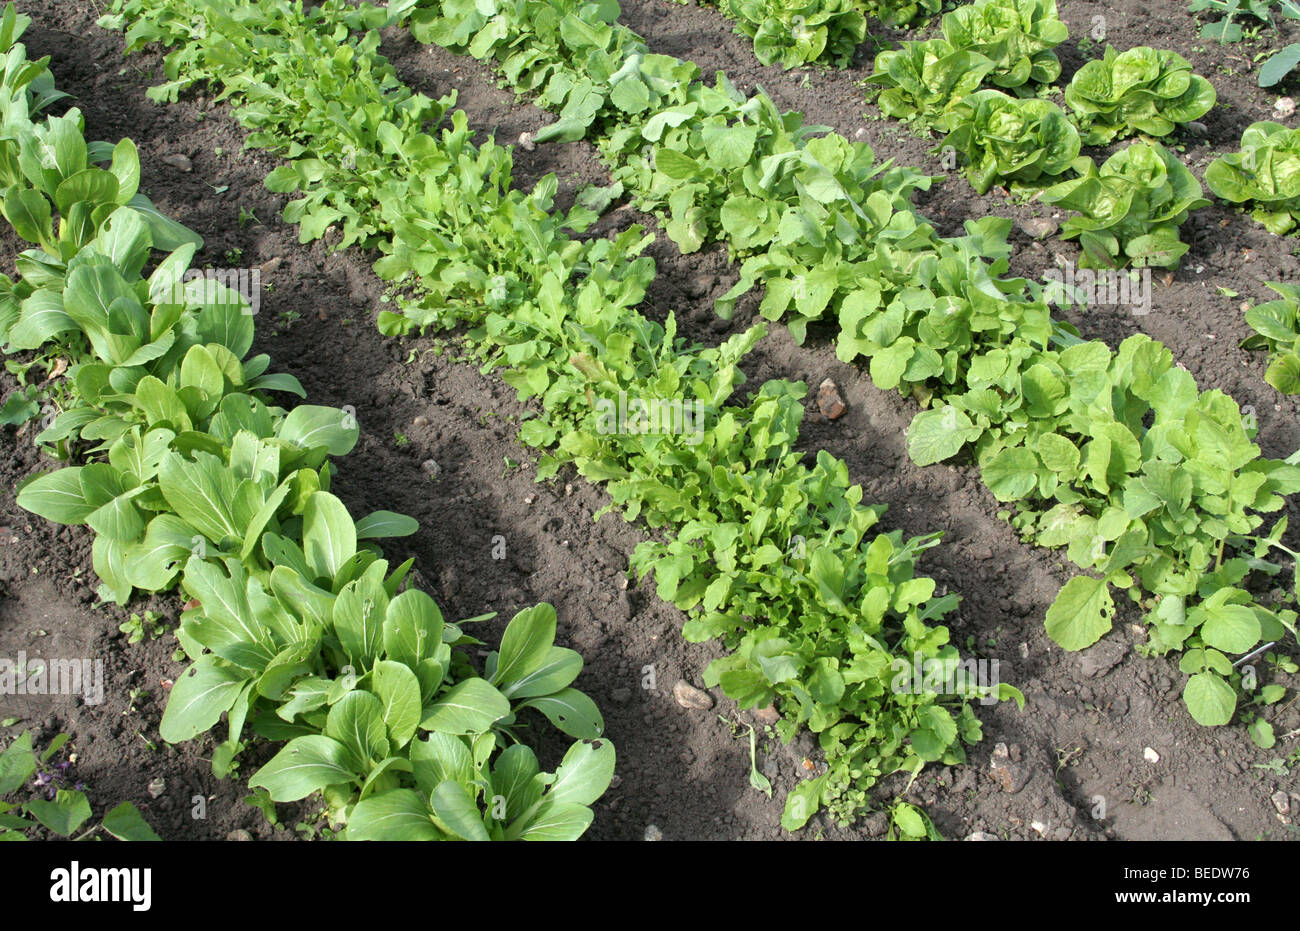 Vegetable garden rows - Rows Of Young Pak Choi Rocket Radishes And Lettuce In A Vegetable Garden